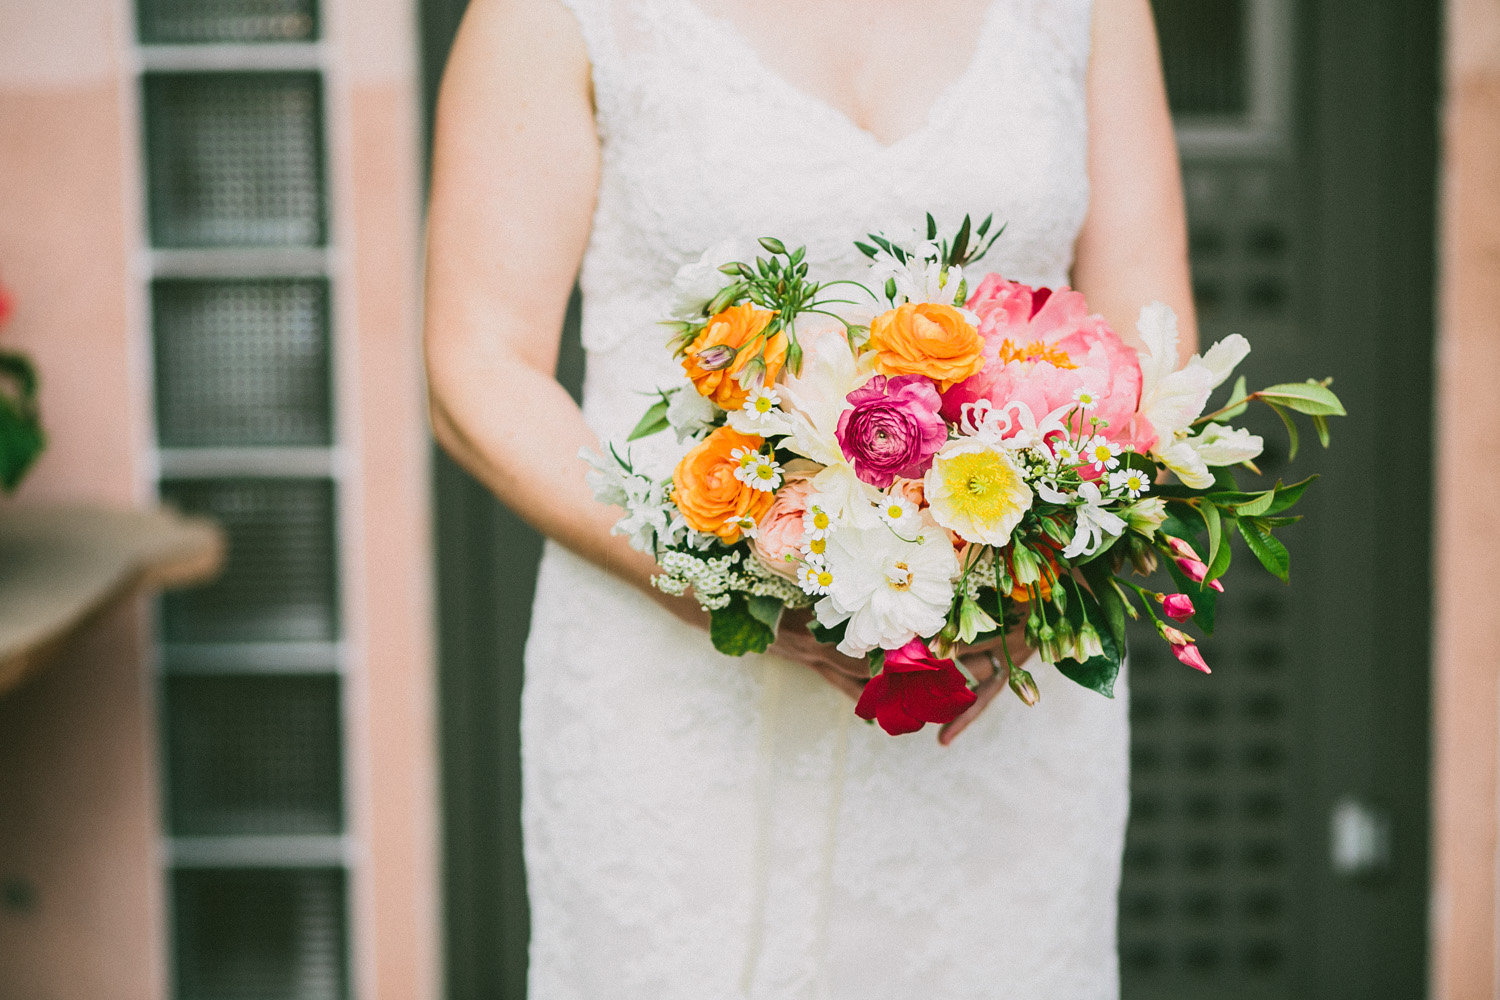 Wedding Bouquet   Home Ranch Wedding   Hill Country Texas   Lisa Woods Photography